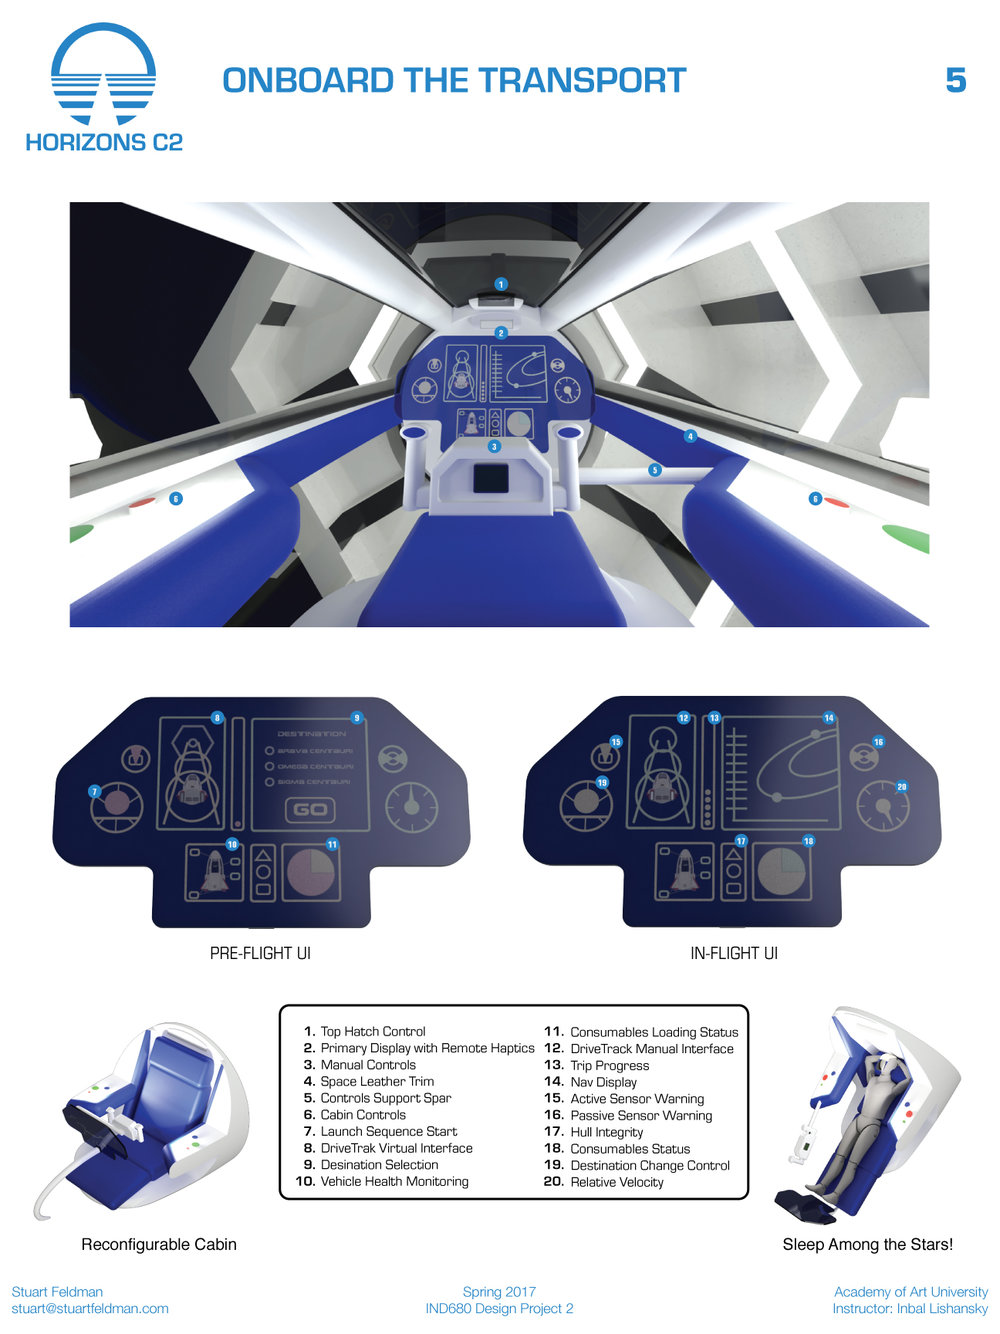 "Here is the interior design of the vehicle. We see a driver's eye view of the cabin, including the manual controls and display. We also see a description of the main display panels' UI, with available destinations of the Brava Centauri, Omega Centauri, and Sigma Centauri Orbital stations. These station names are inspired from destinations in the original Horizons space colonization track.  On this board, we also see the Cabin in it's ""sleeper mode"" and I would imagine it would be quite peaceful to sleep among the stars."